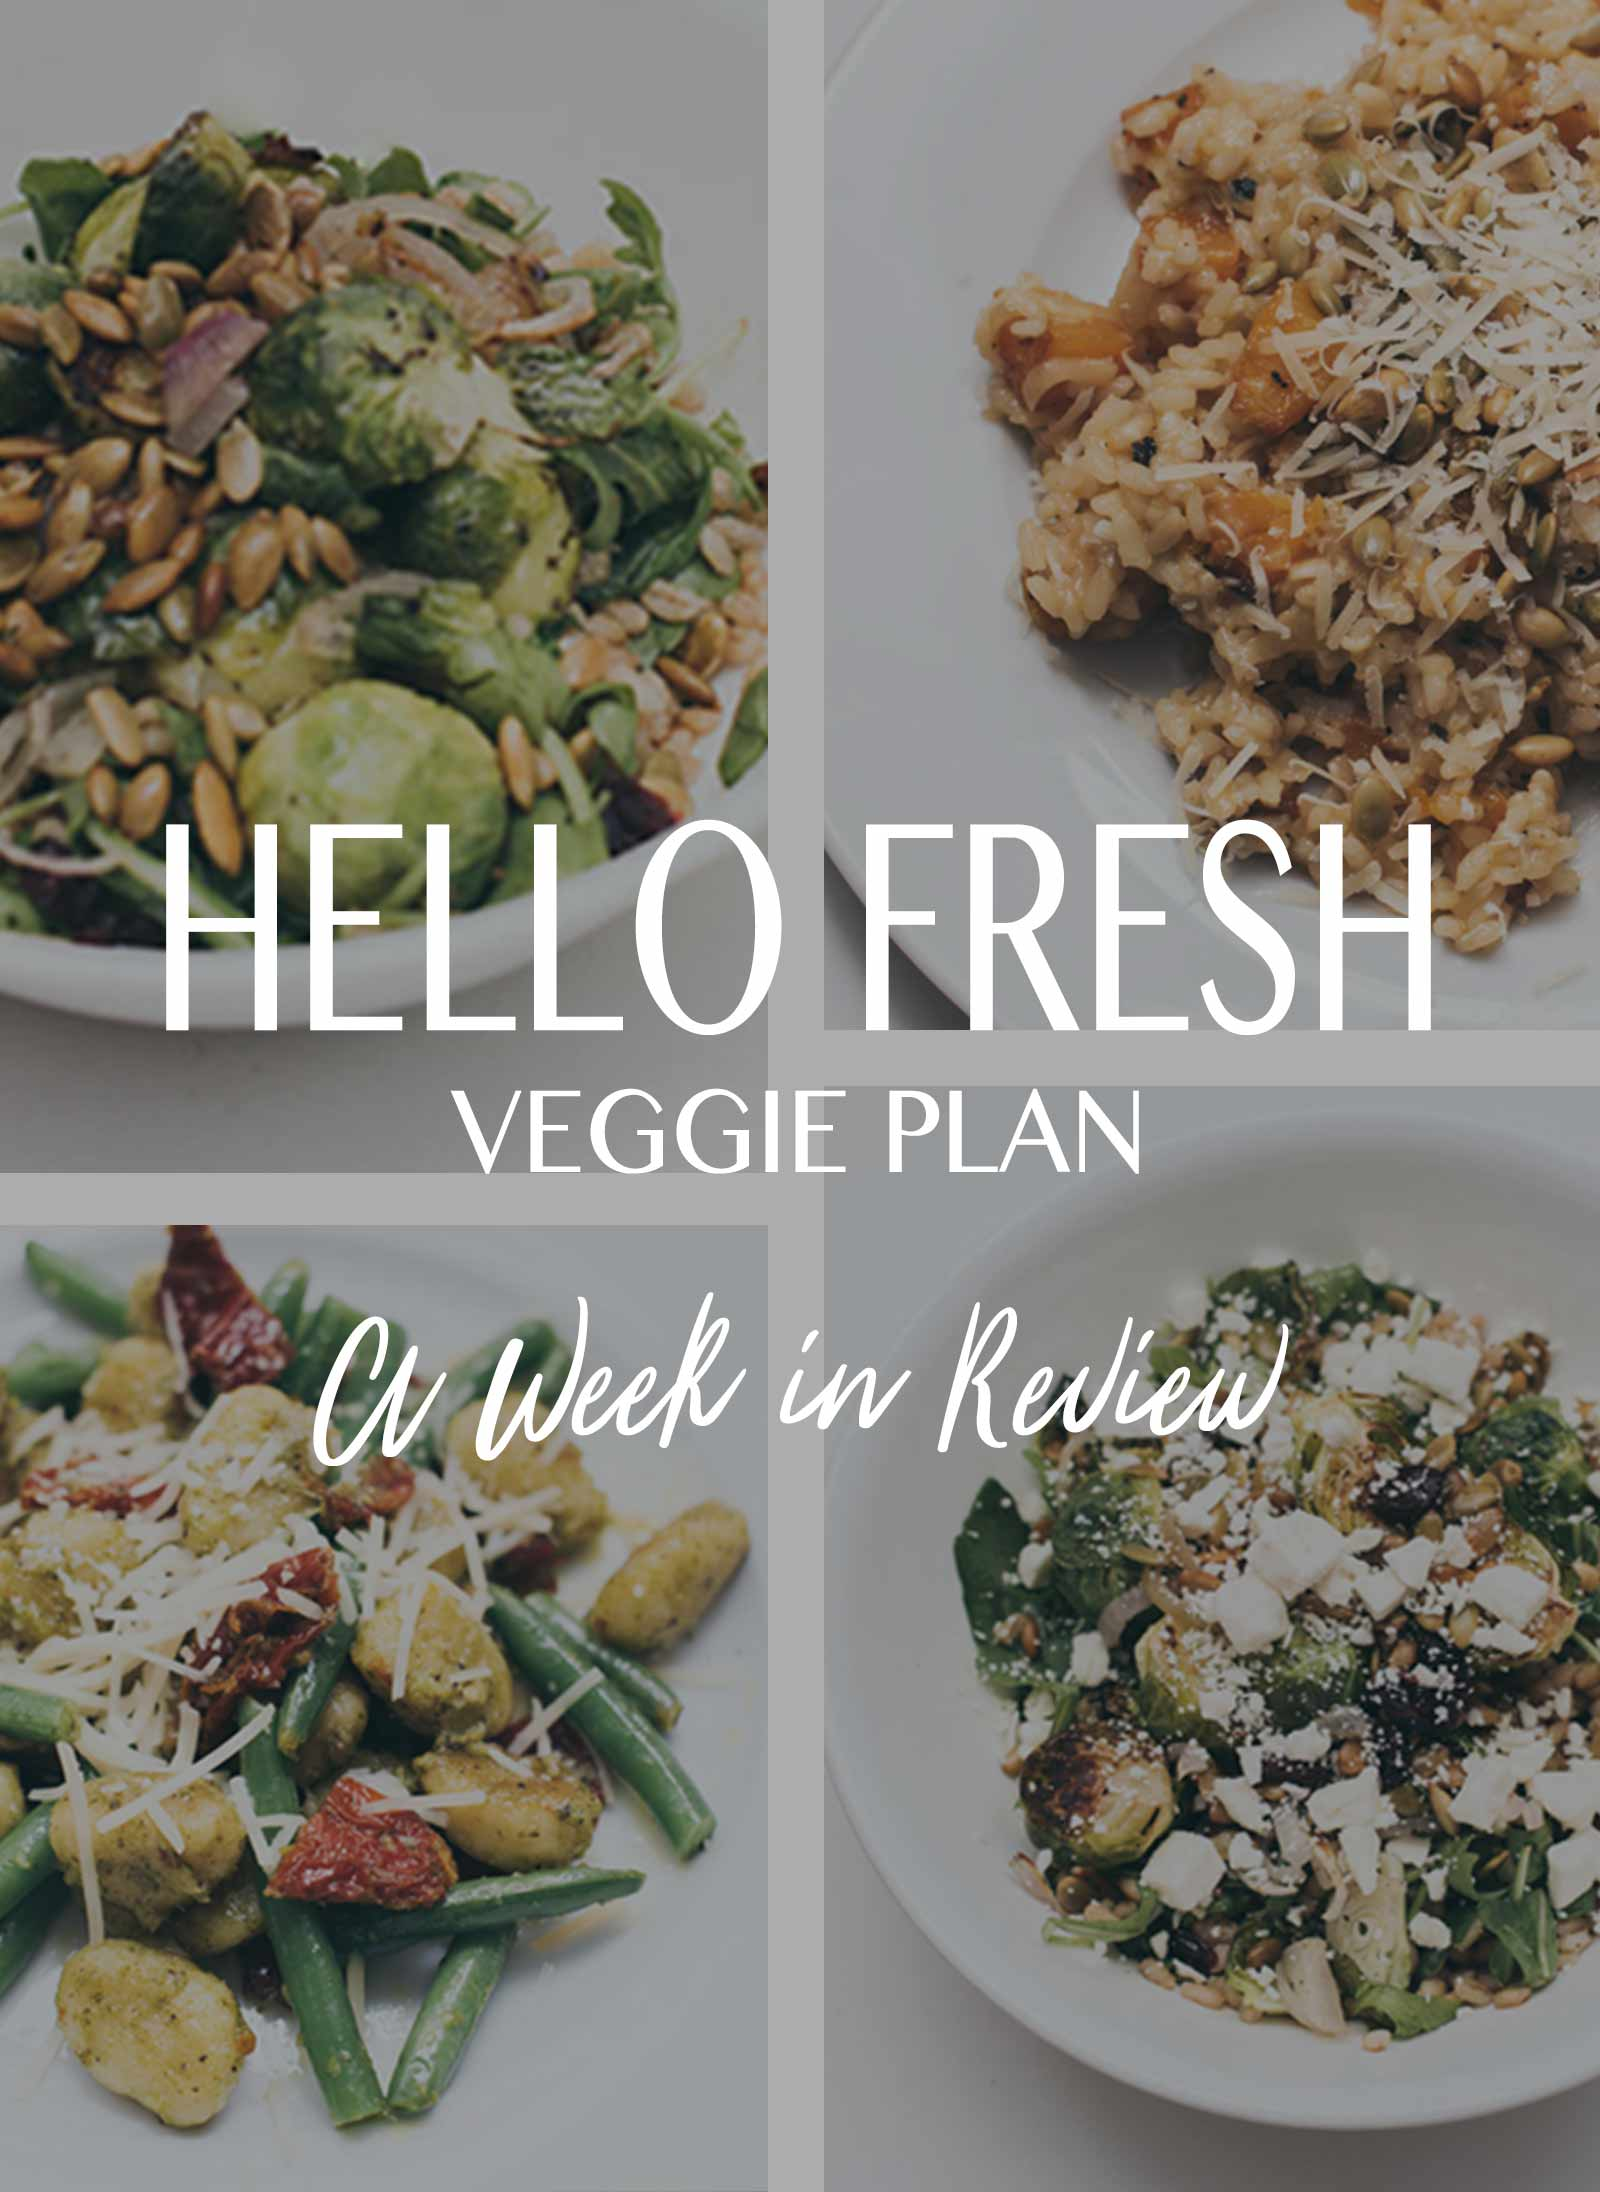 Price Ebay  Meal Kit Delivery Service Hellofresh